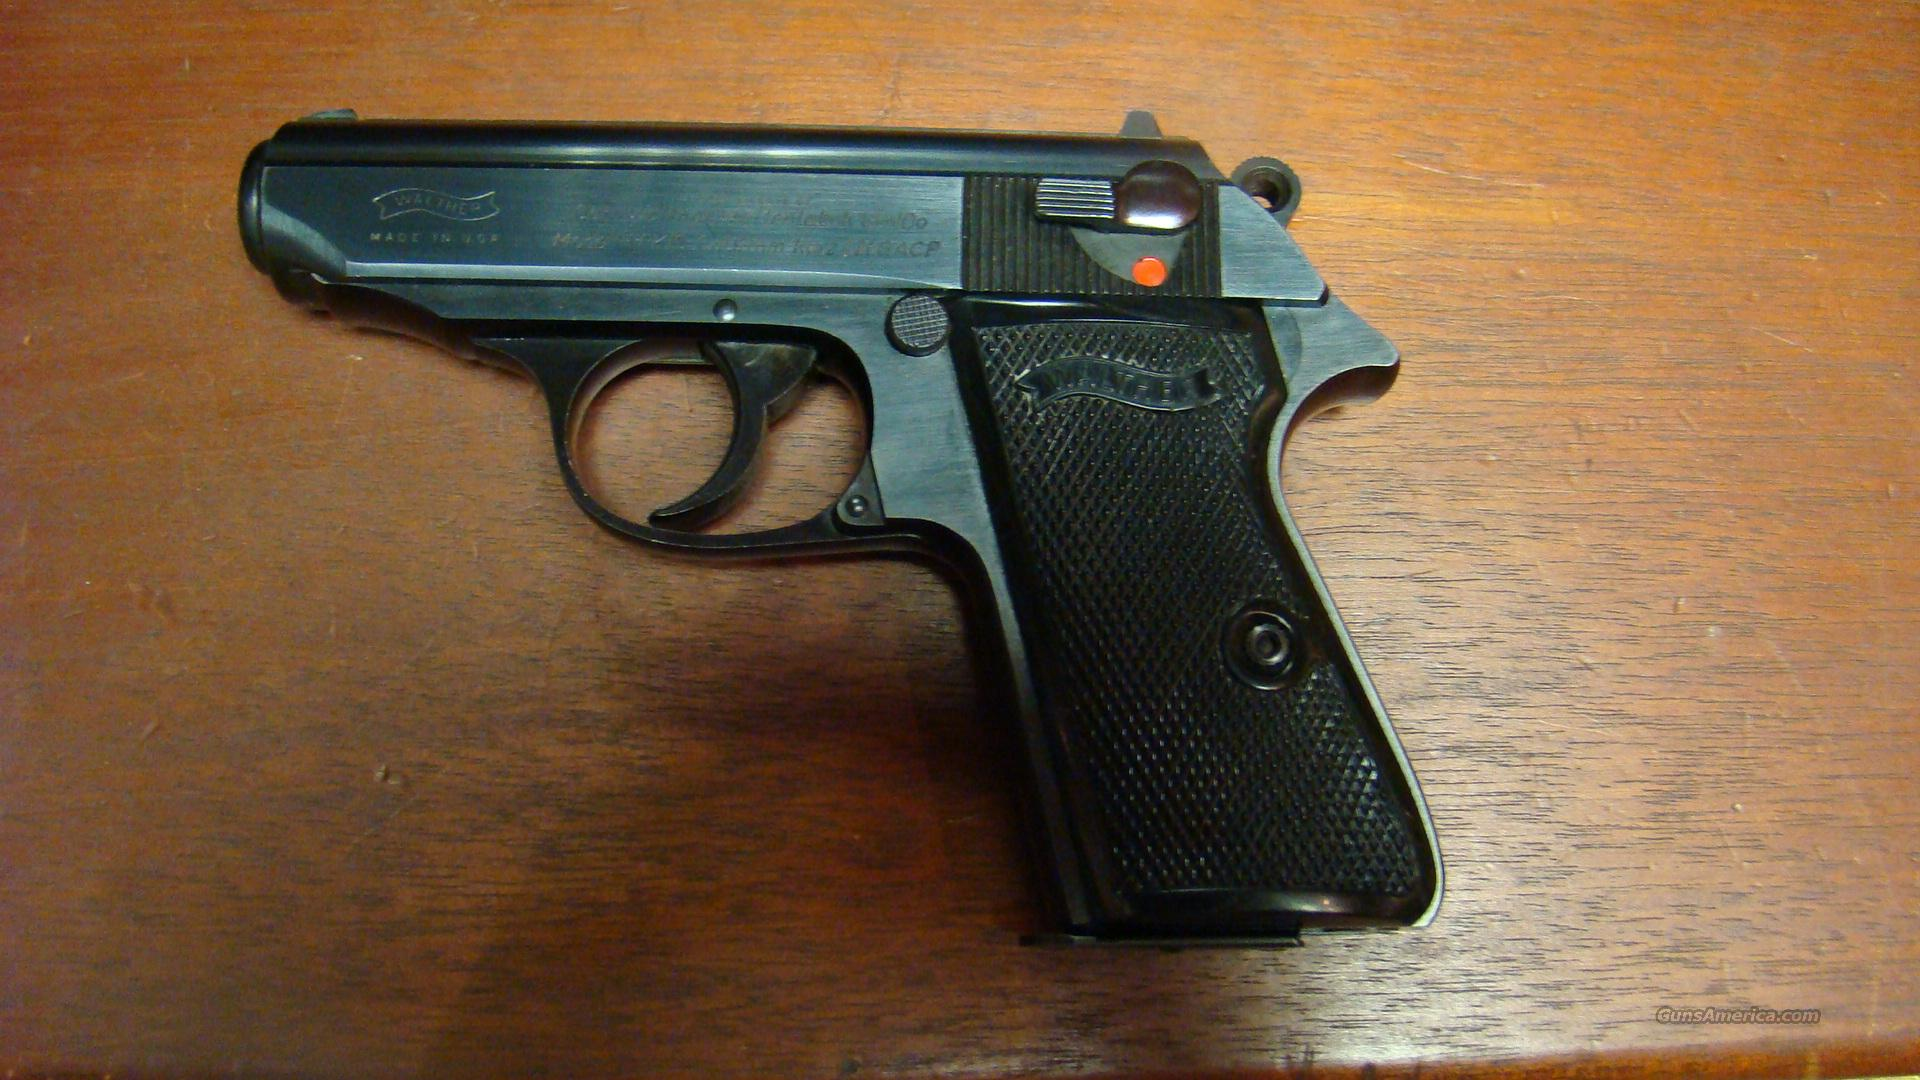 MINT WALTHER PPK/S 380 MINT AS NEW   Guns > Pistols > Walther Pistols > Post WWII > PP Series